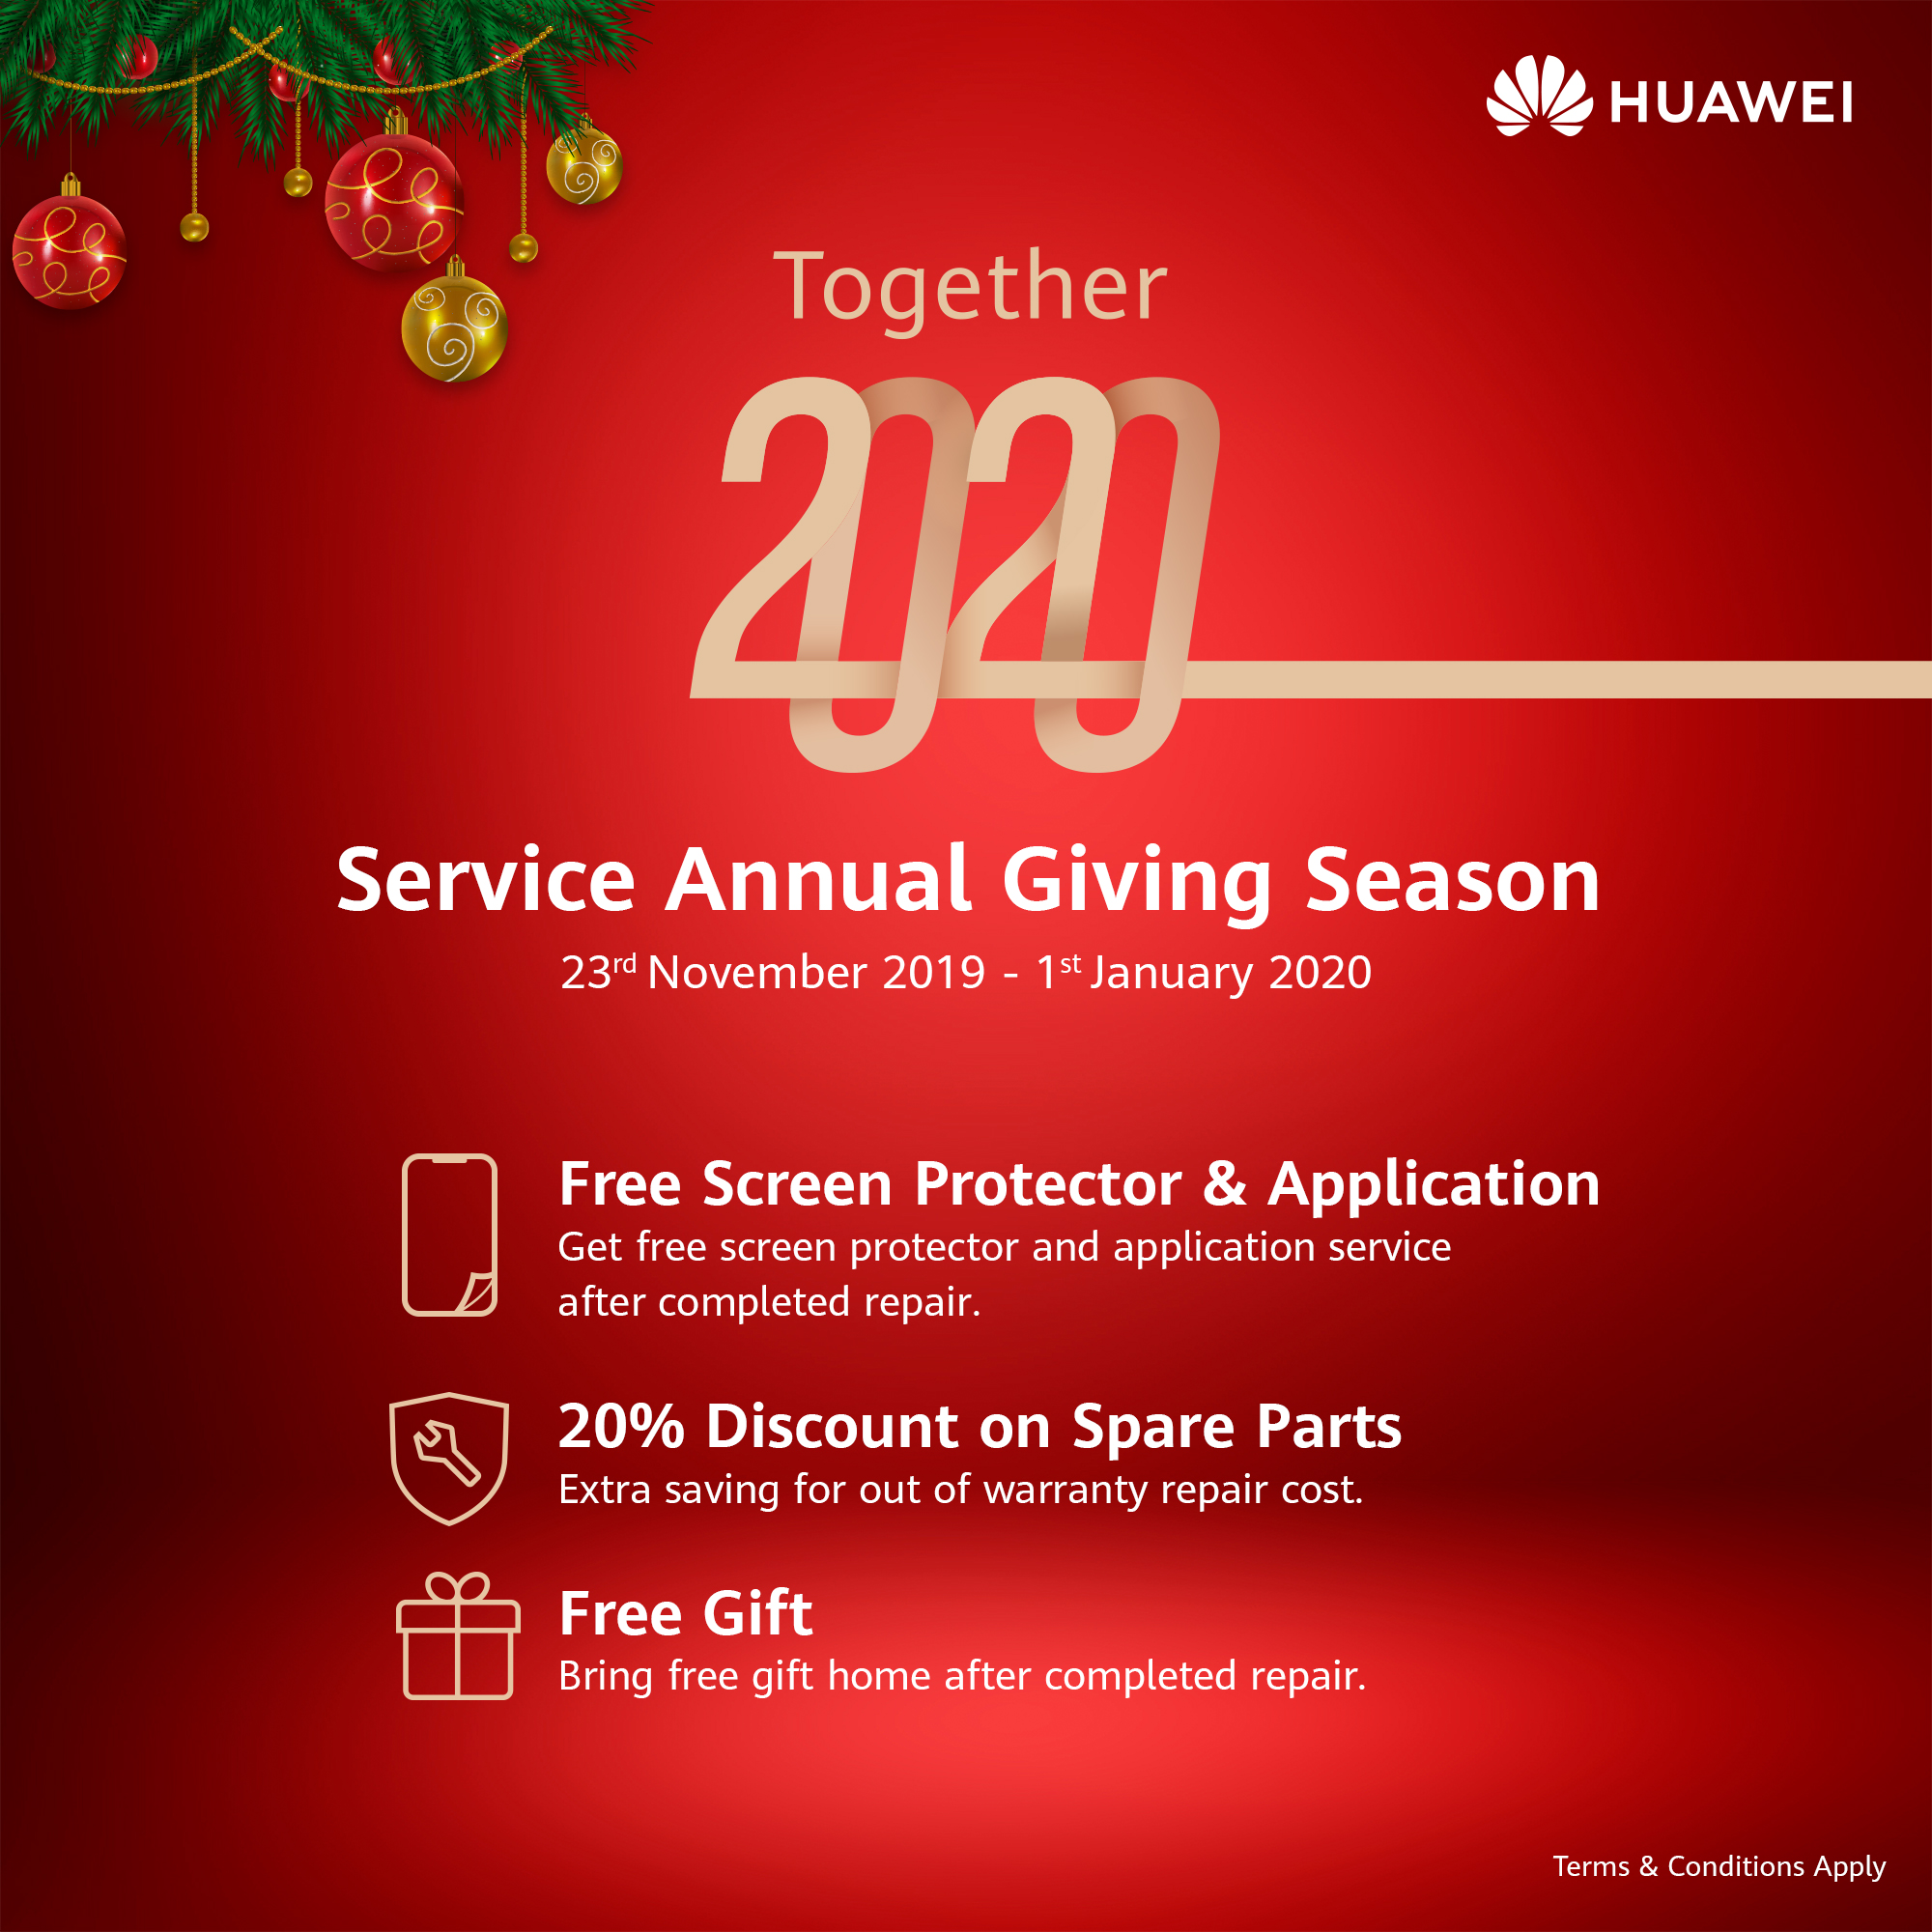 Huawei Service Annual Giving Season